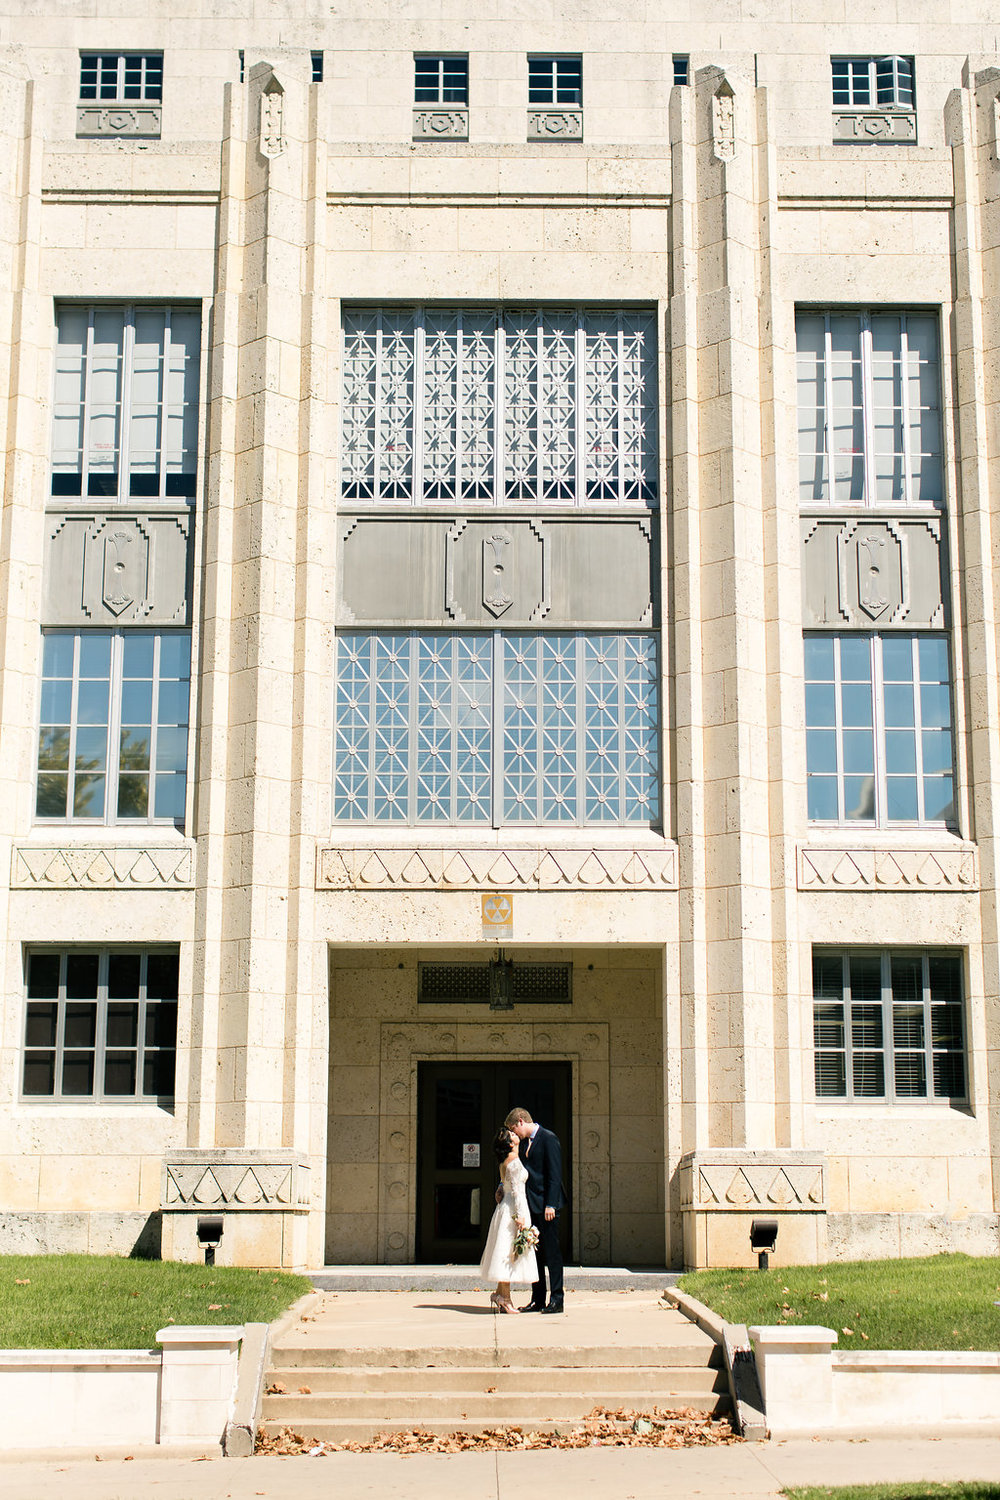 Paige-Newton-Photography-Elopement-Photographer-Austin-Courthouse-Fresas-Chicken0022.jpg